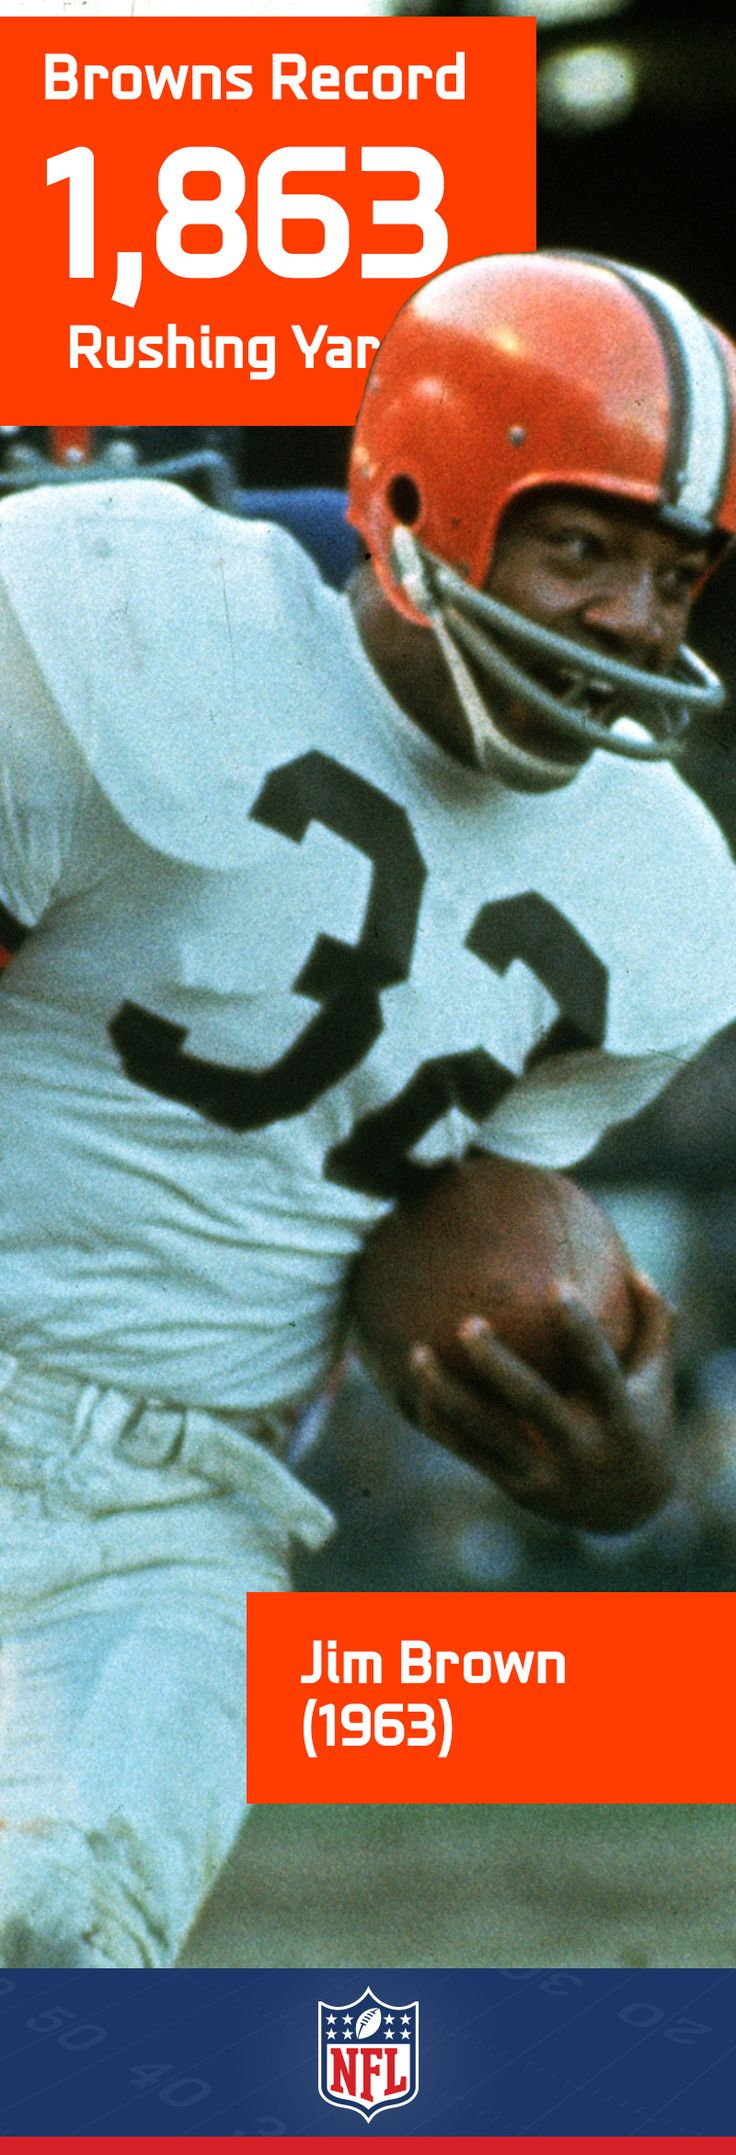 An all-time great, Jim Brown holds his fair share of Cleveland honors. One that isn't likely to fall any time soon is his phenomenal 1,863 yard rushing performance in 1963. Another amazing Jim Brown stat: he averaged 104.3 yards per game during his historic career.